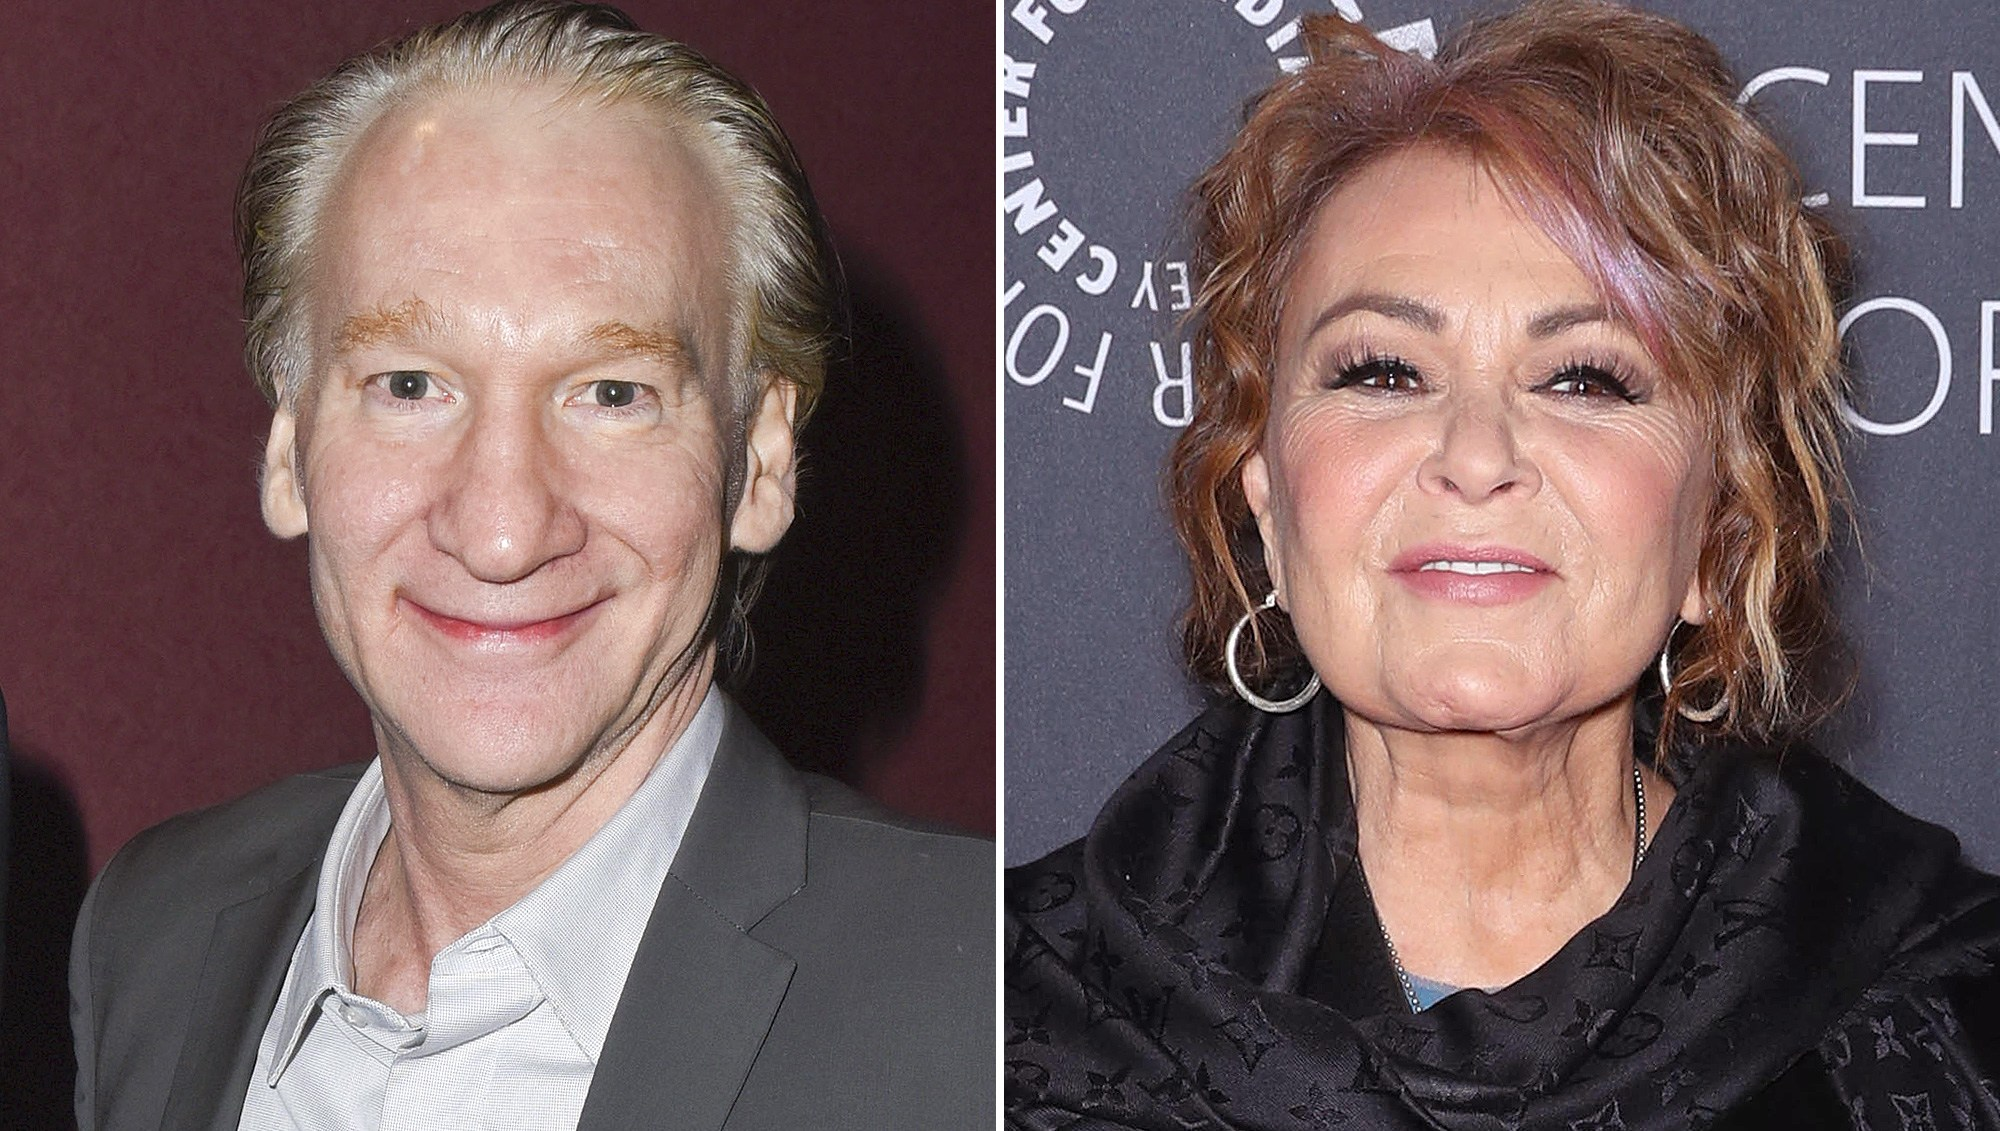 Bill Maher, Friend, Roseanne Barr, Multiple Personalities